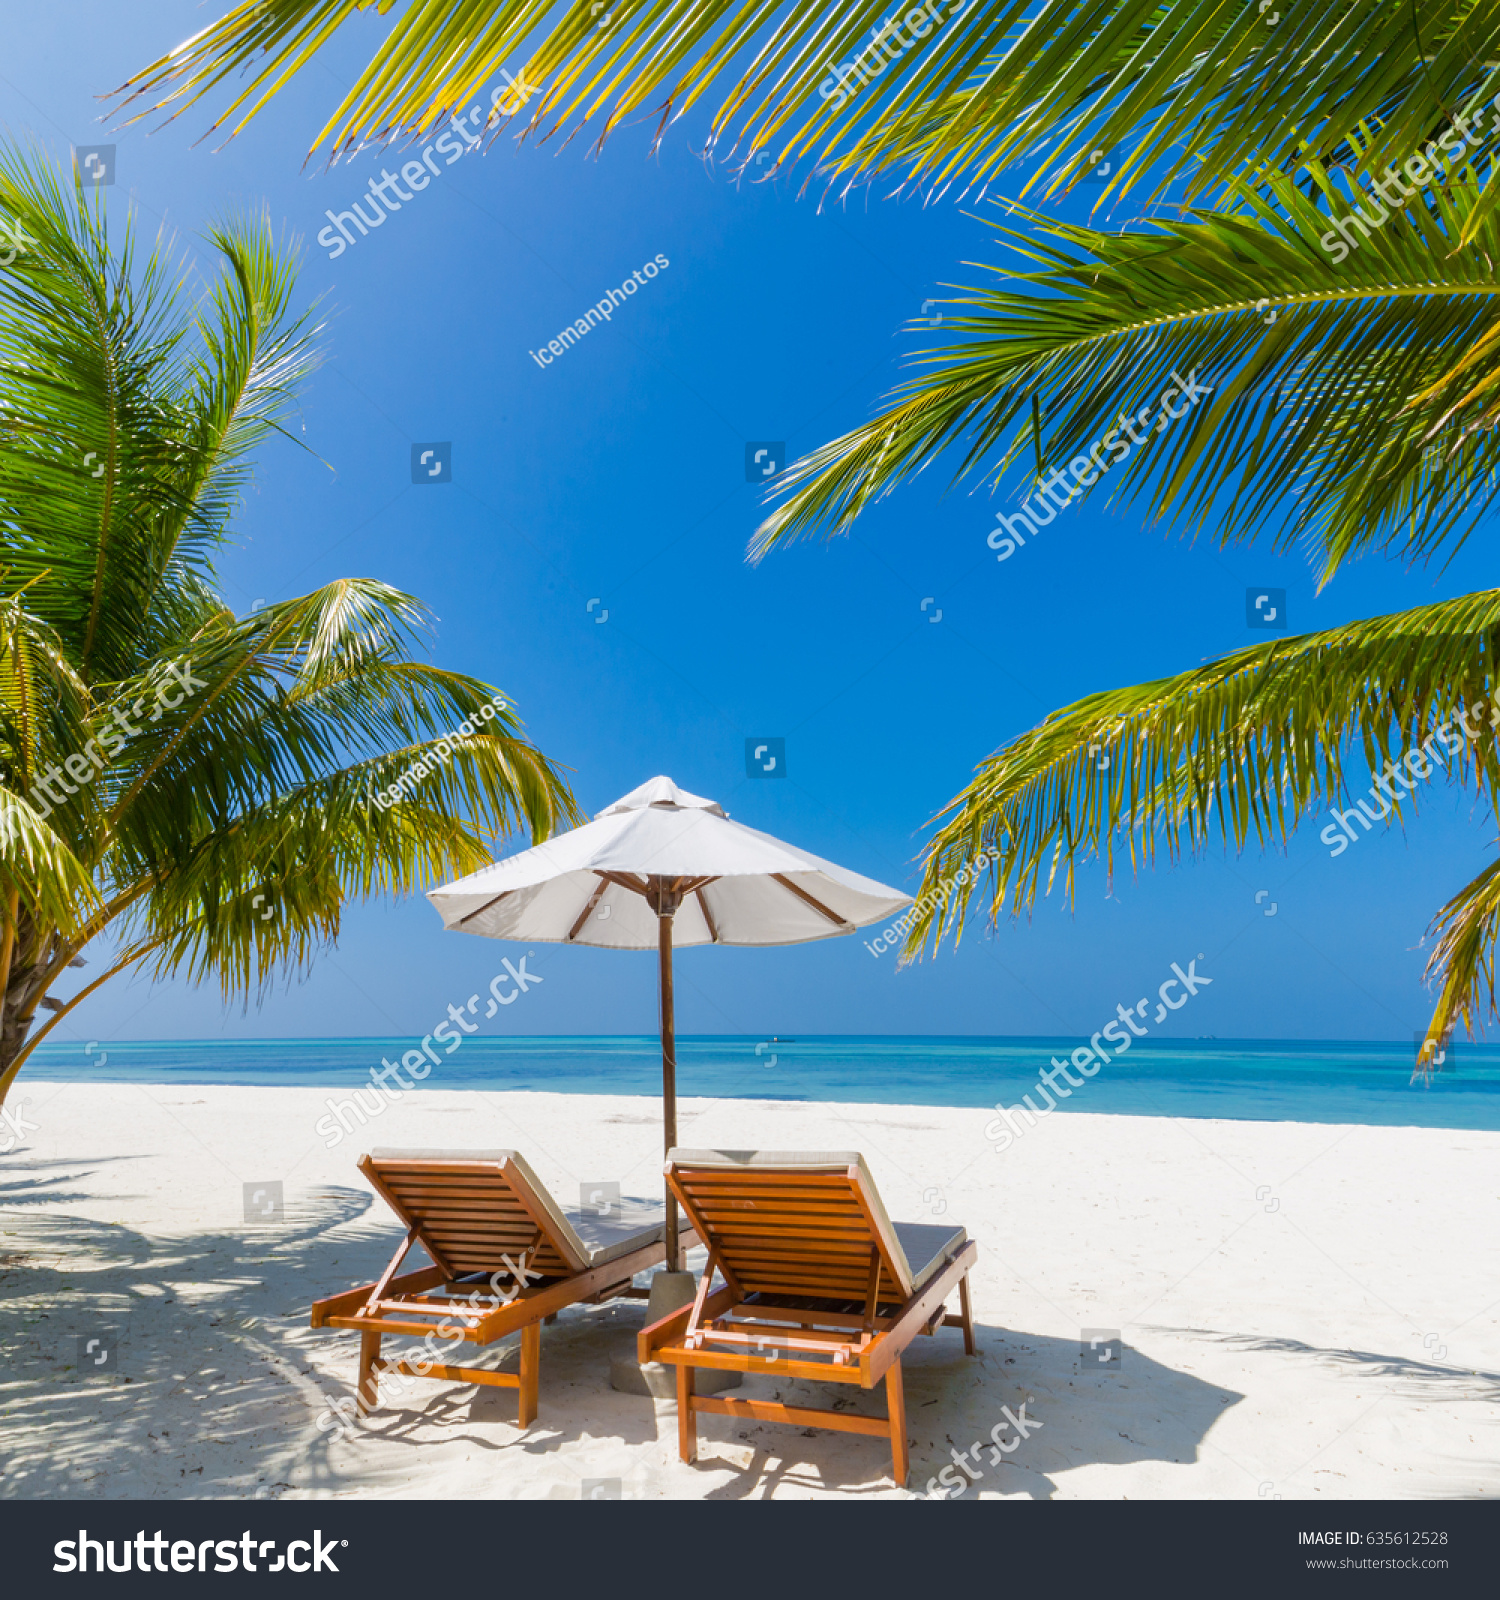 Beautiful Beach Landscape Idyllic Tropical Scenery Stock Photo Royalty Free 635612528